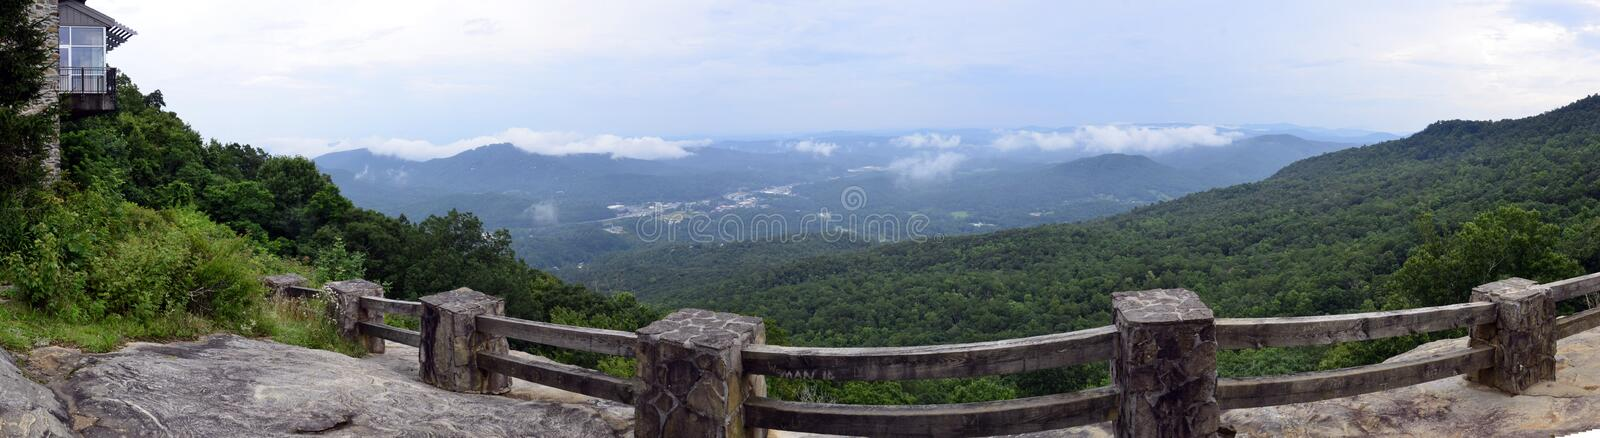 Black Rock Mountain State Park Georgia overlook royalty free stock images